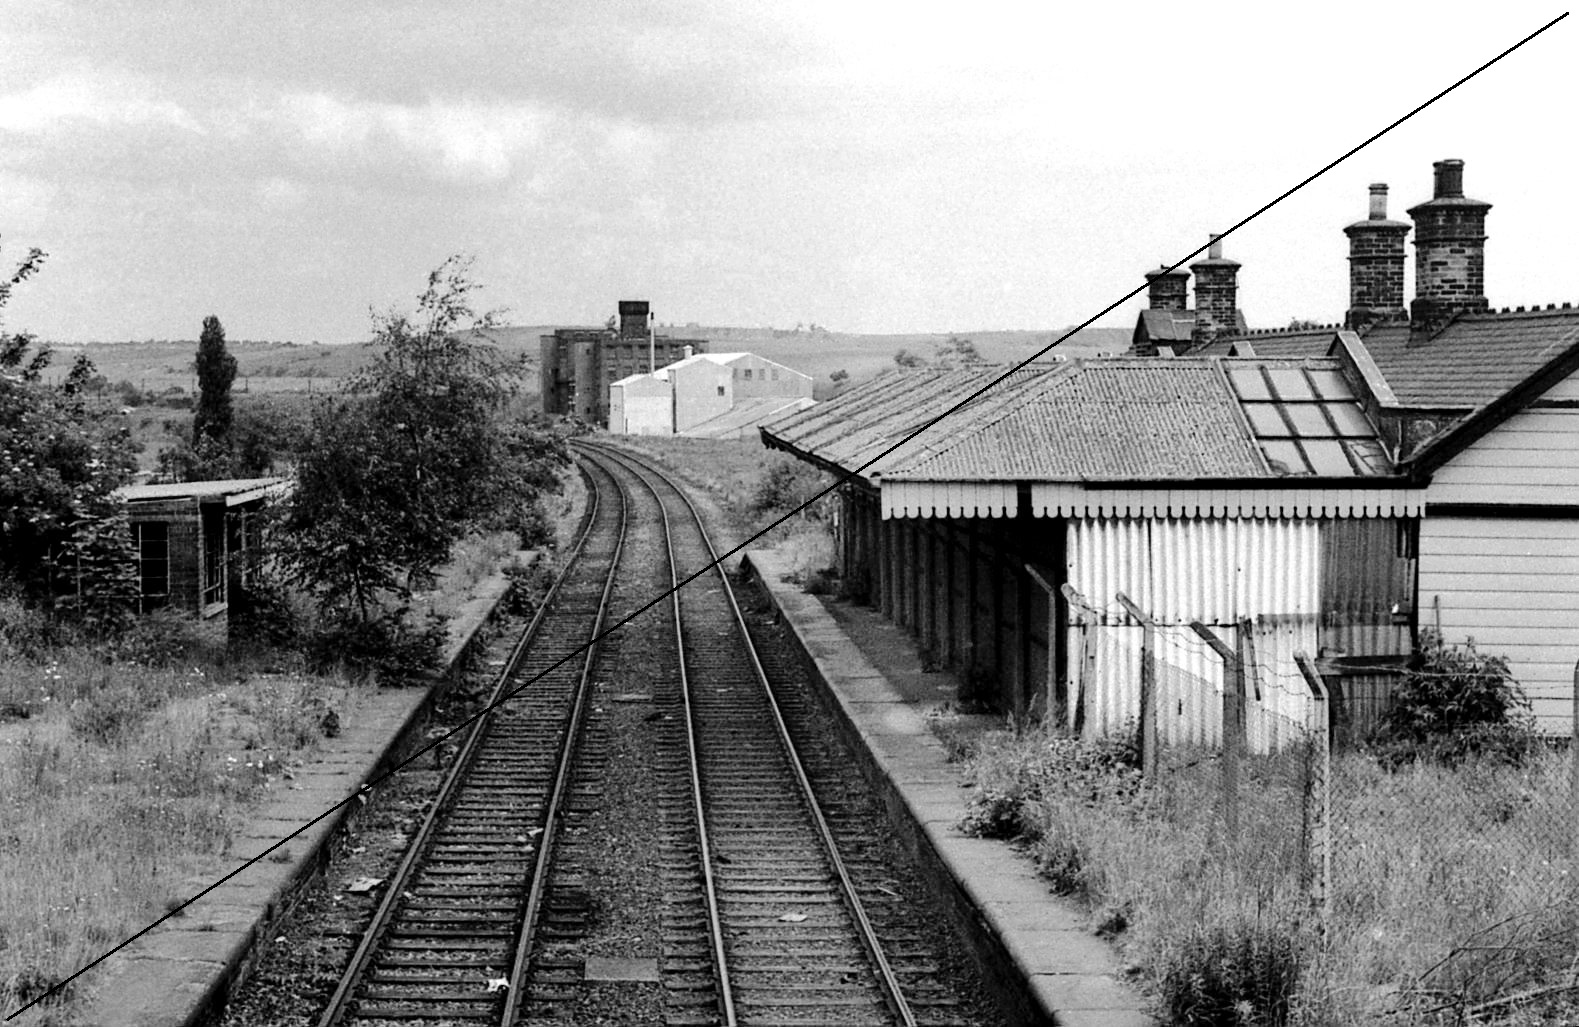 GCR007-Killamarsh Central Station-Looking North-16-06-1977.jpg